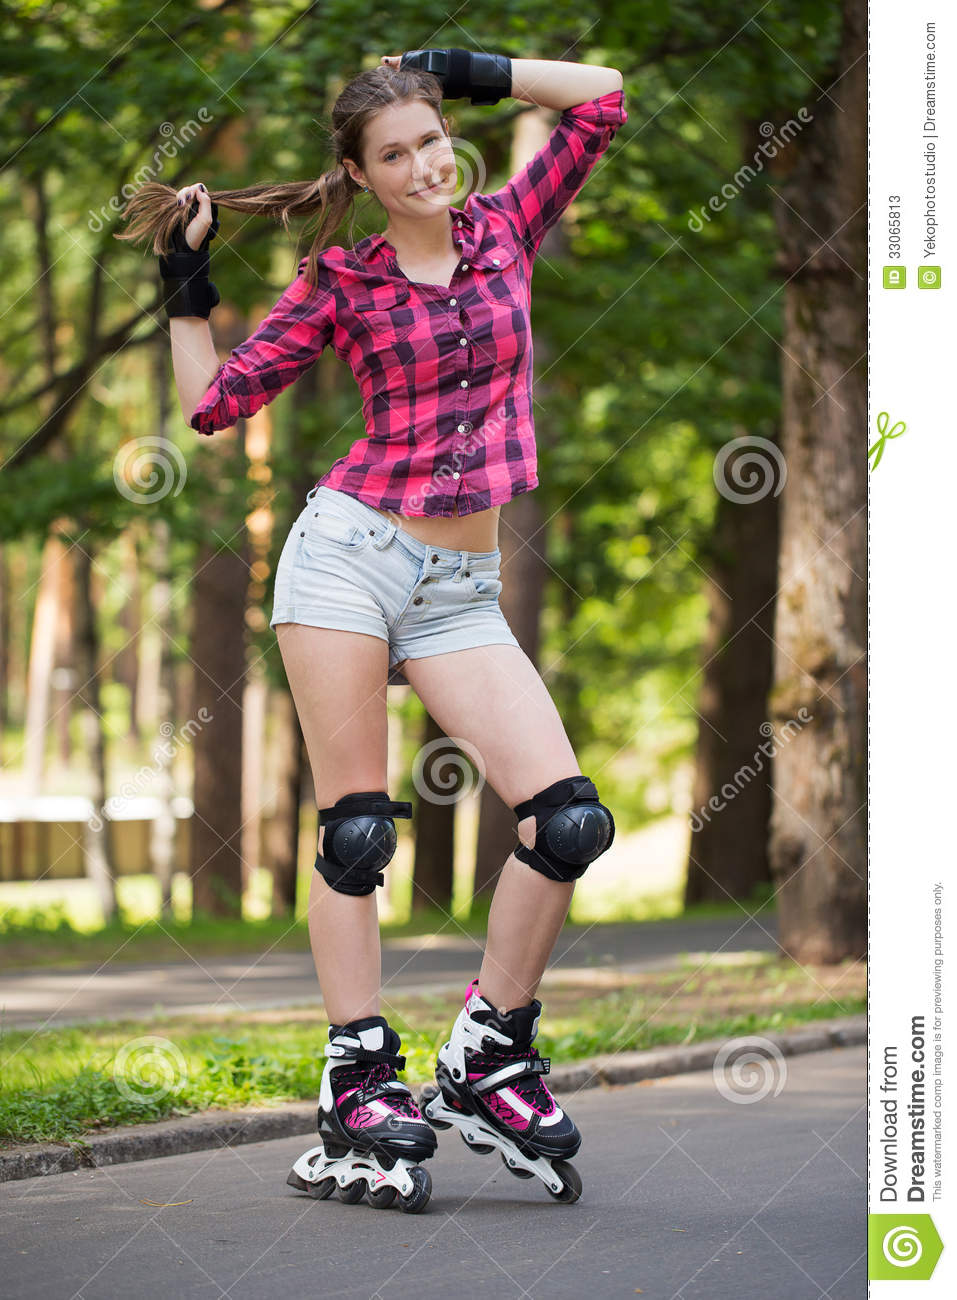 Candy Girl Wallpaper Beautiful Girl On Rollerblades Stock Image Image Of